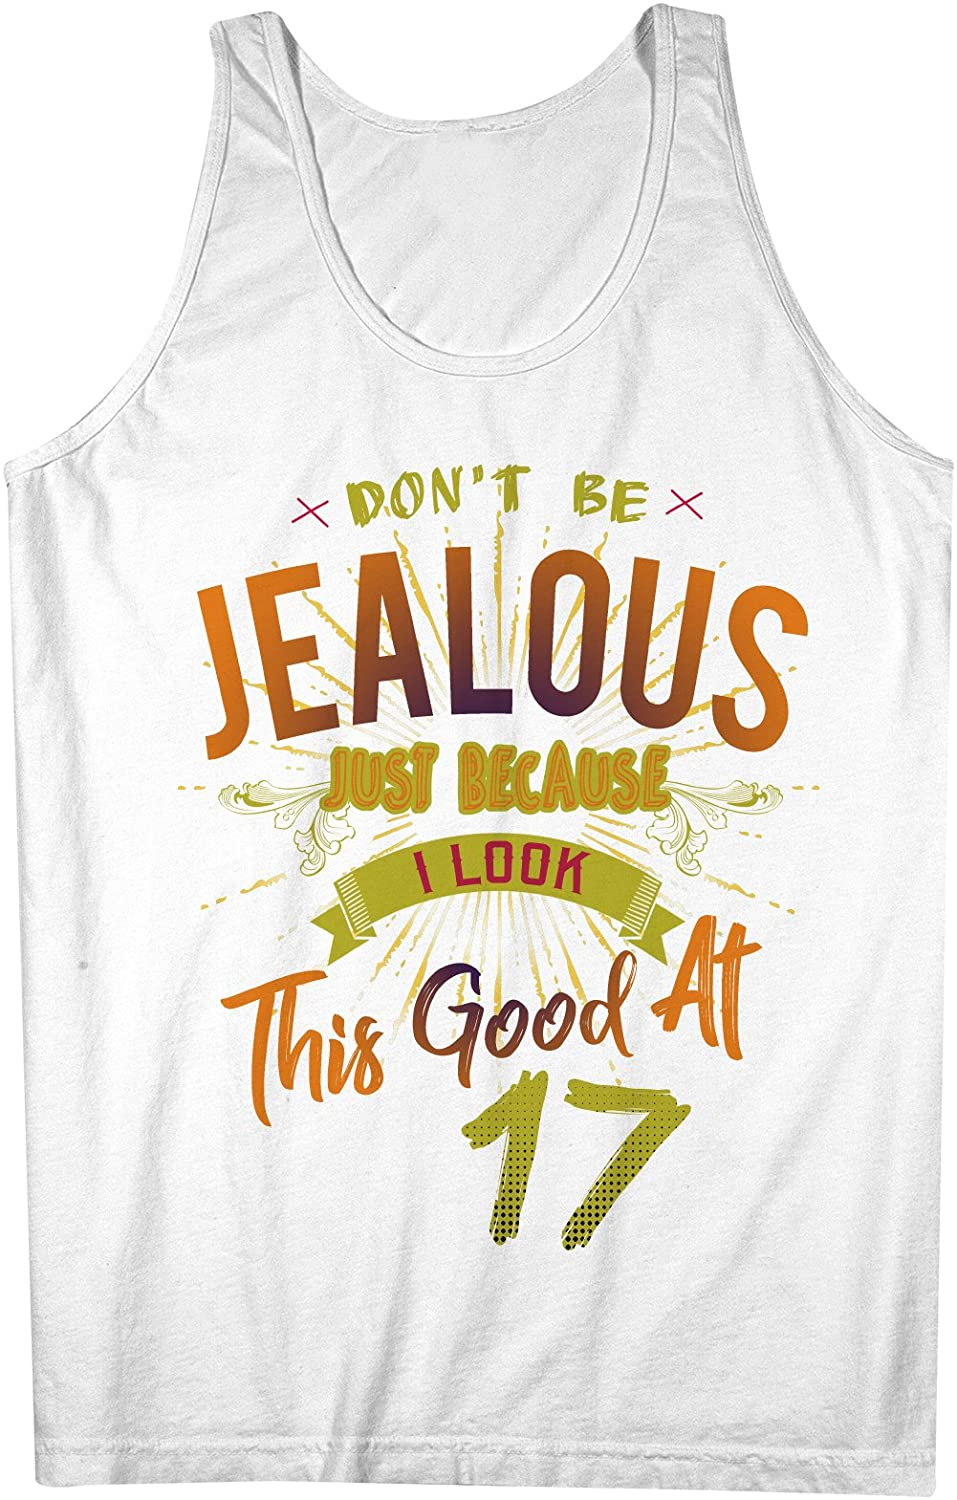 Dont Be Jealous I Look This Good At 17 Birthday Anniversary Mens Tank Top Sleeveless Shirt White XX-Large